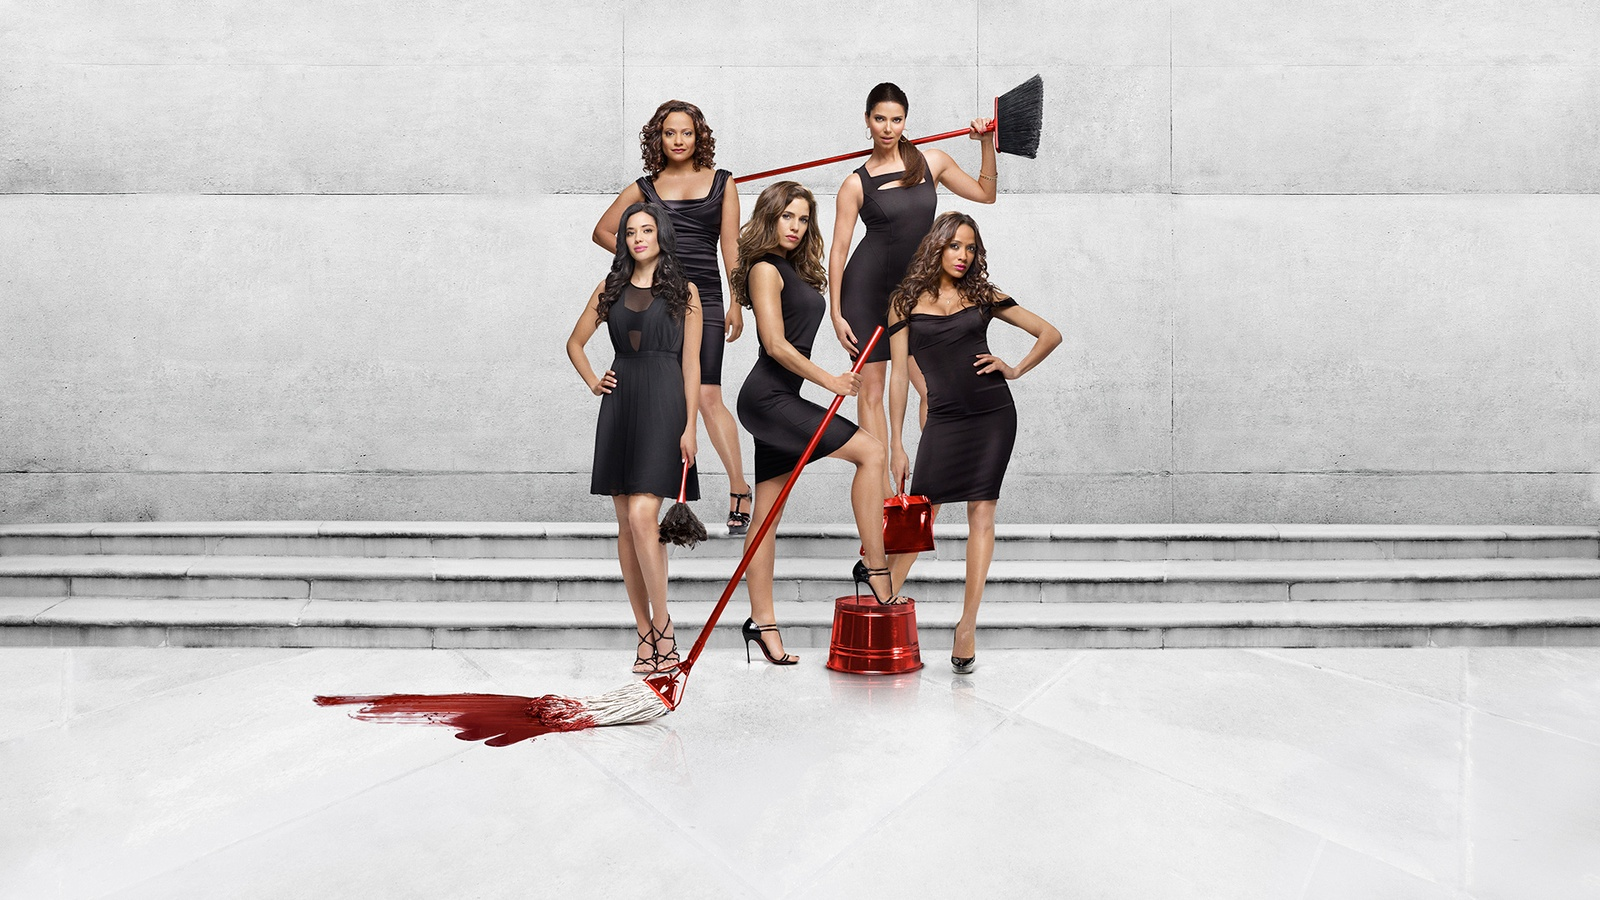 Коварные горничные/Devious Maids background